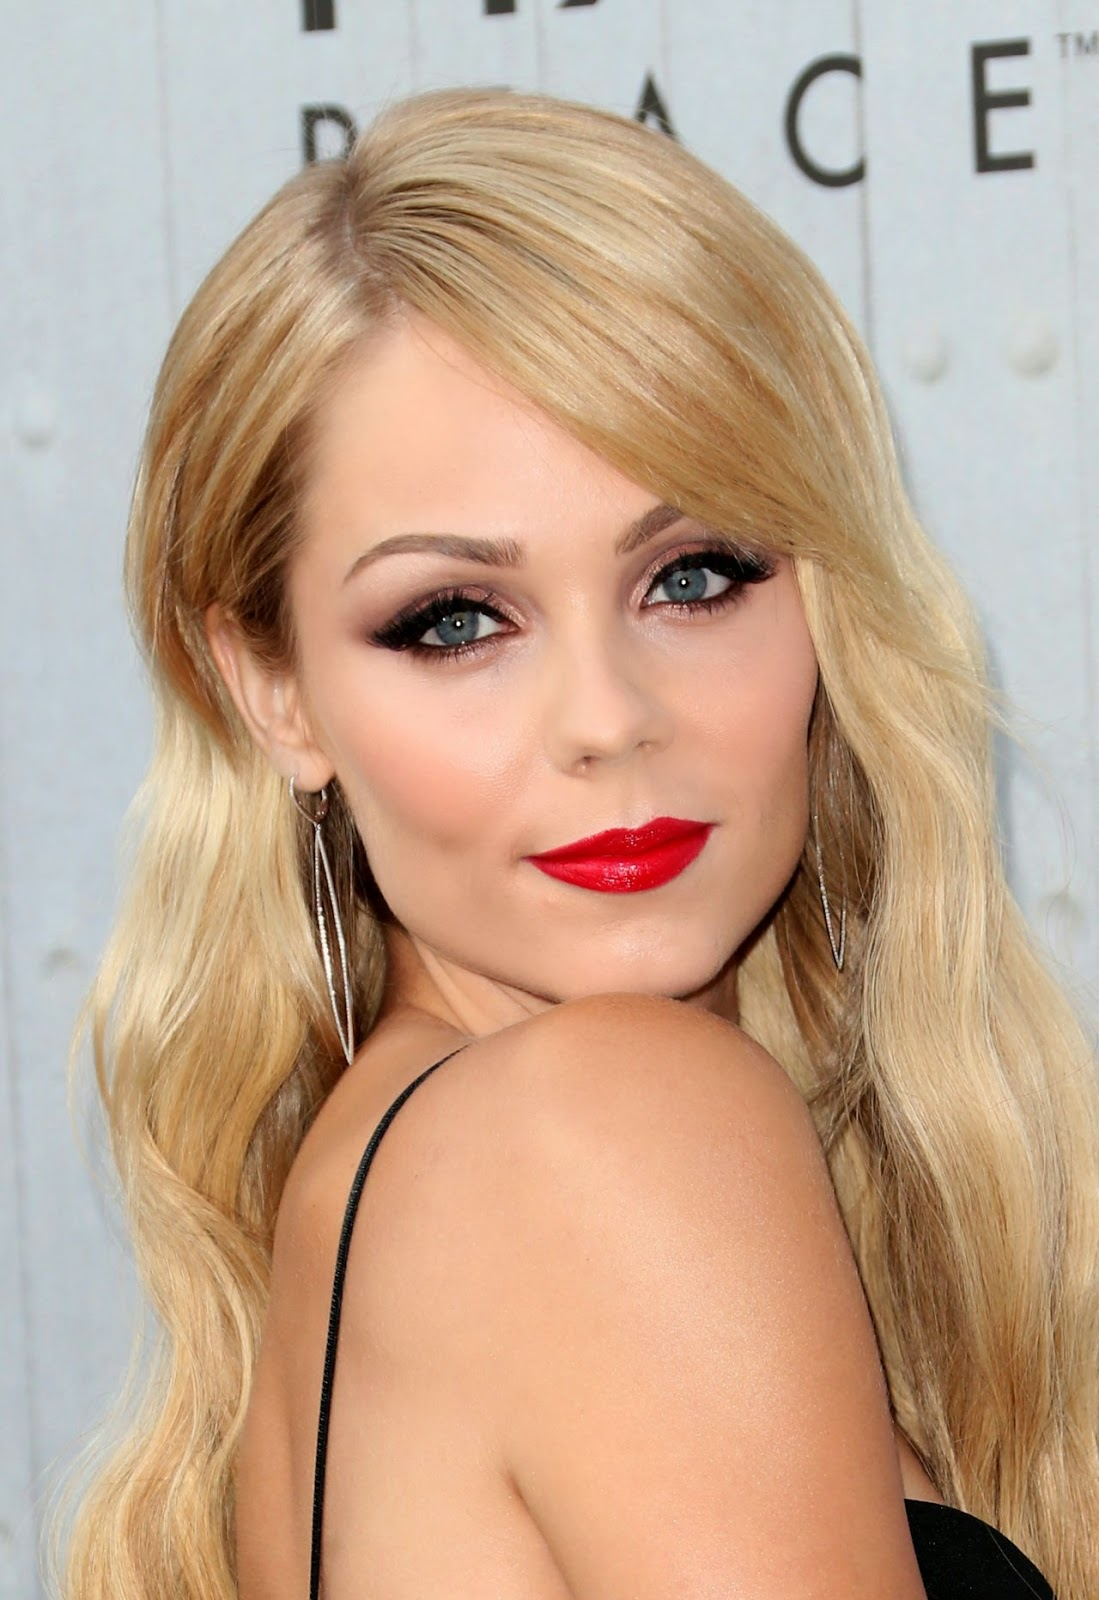 Laura Vandervoort Dresses Up In A Sultry Look For The 2014